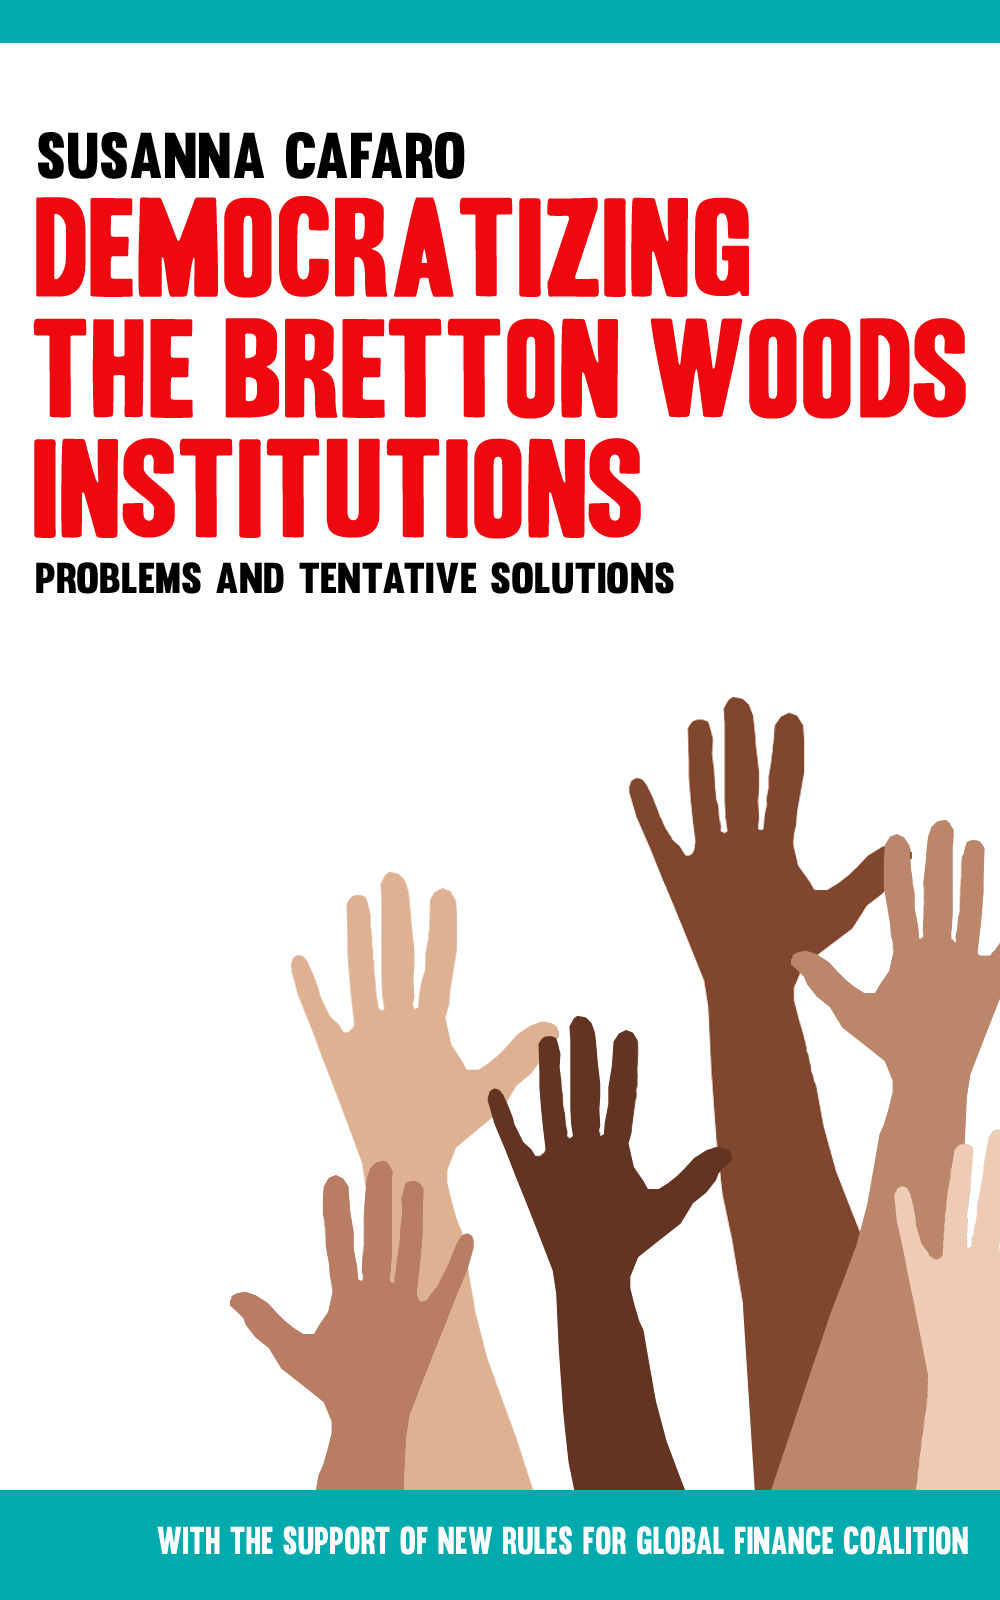 the impact of the bretton wood institutions The impact of the commodity price crash weighs heavily on many developing countries and has caused a significant fall in global trade while the imf warns that both private and public debt levels remain dangerously high, that the anticipated deleveraging did not happen, the main response of the bretton woods institutions (bwis) is new lending.